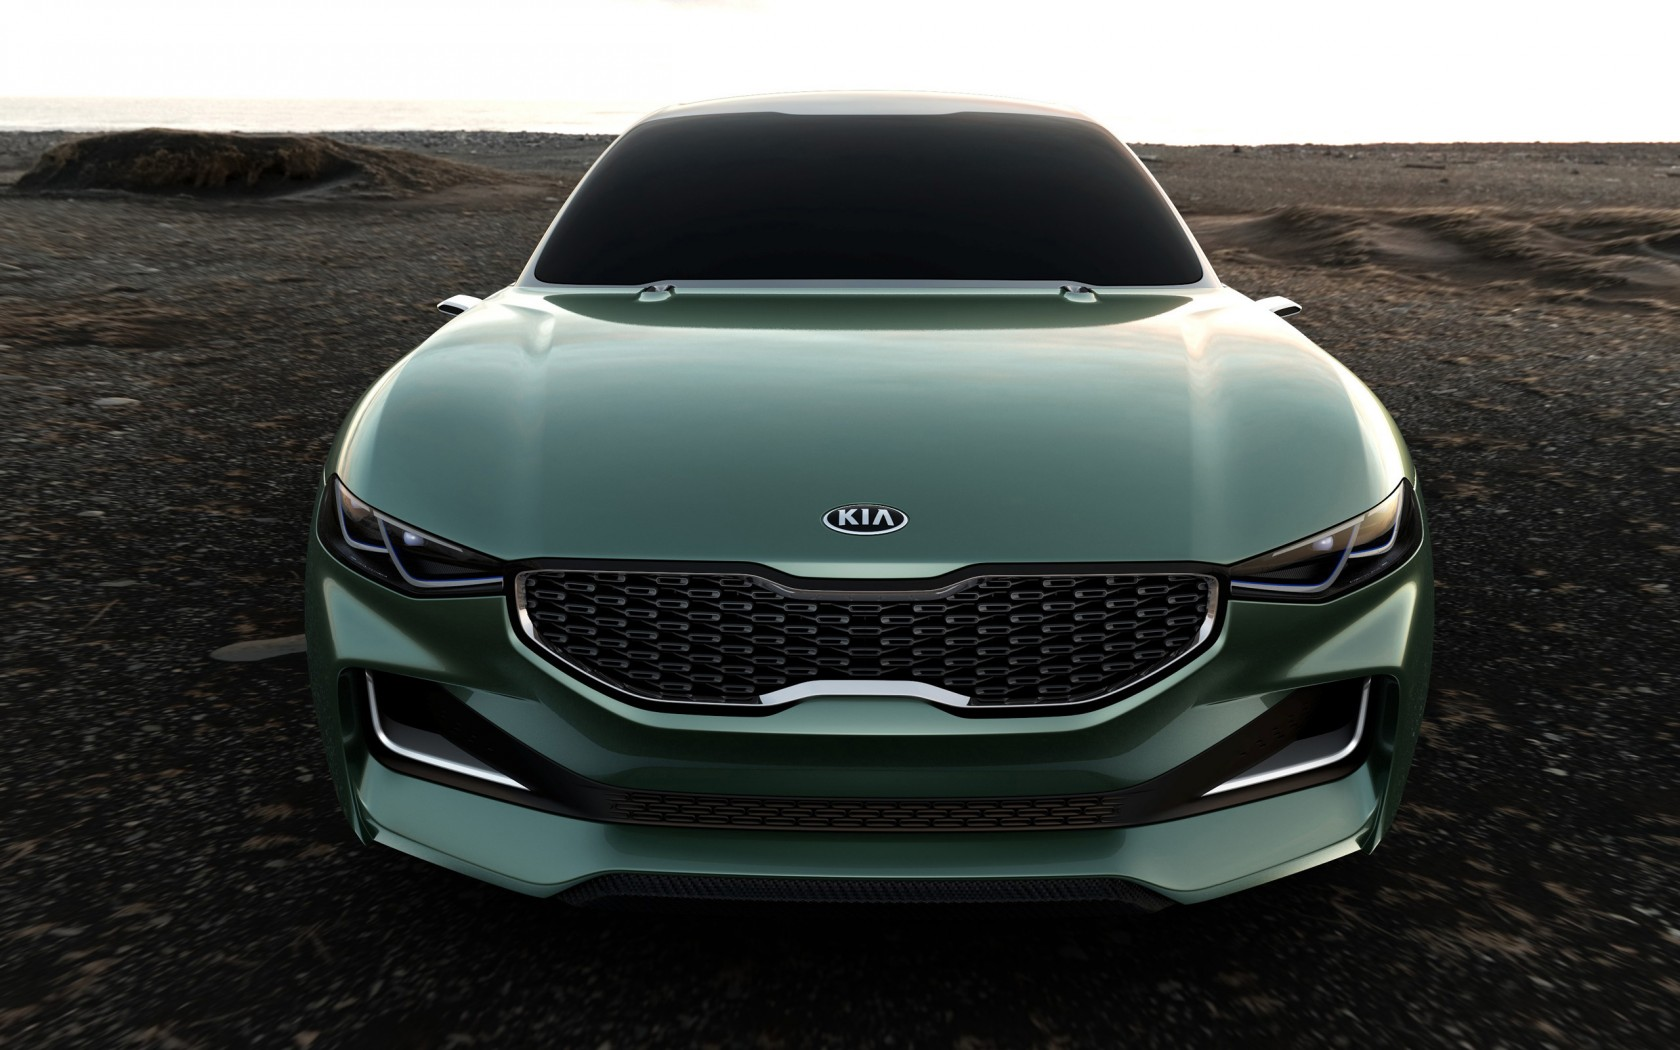 Cars Wallpapers: 2015 Kia Novo Concept Wallpaper